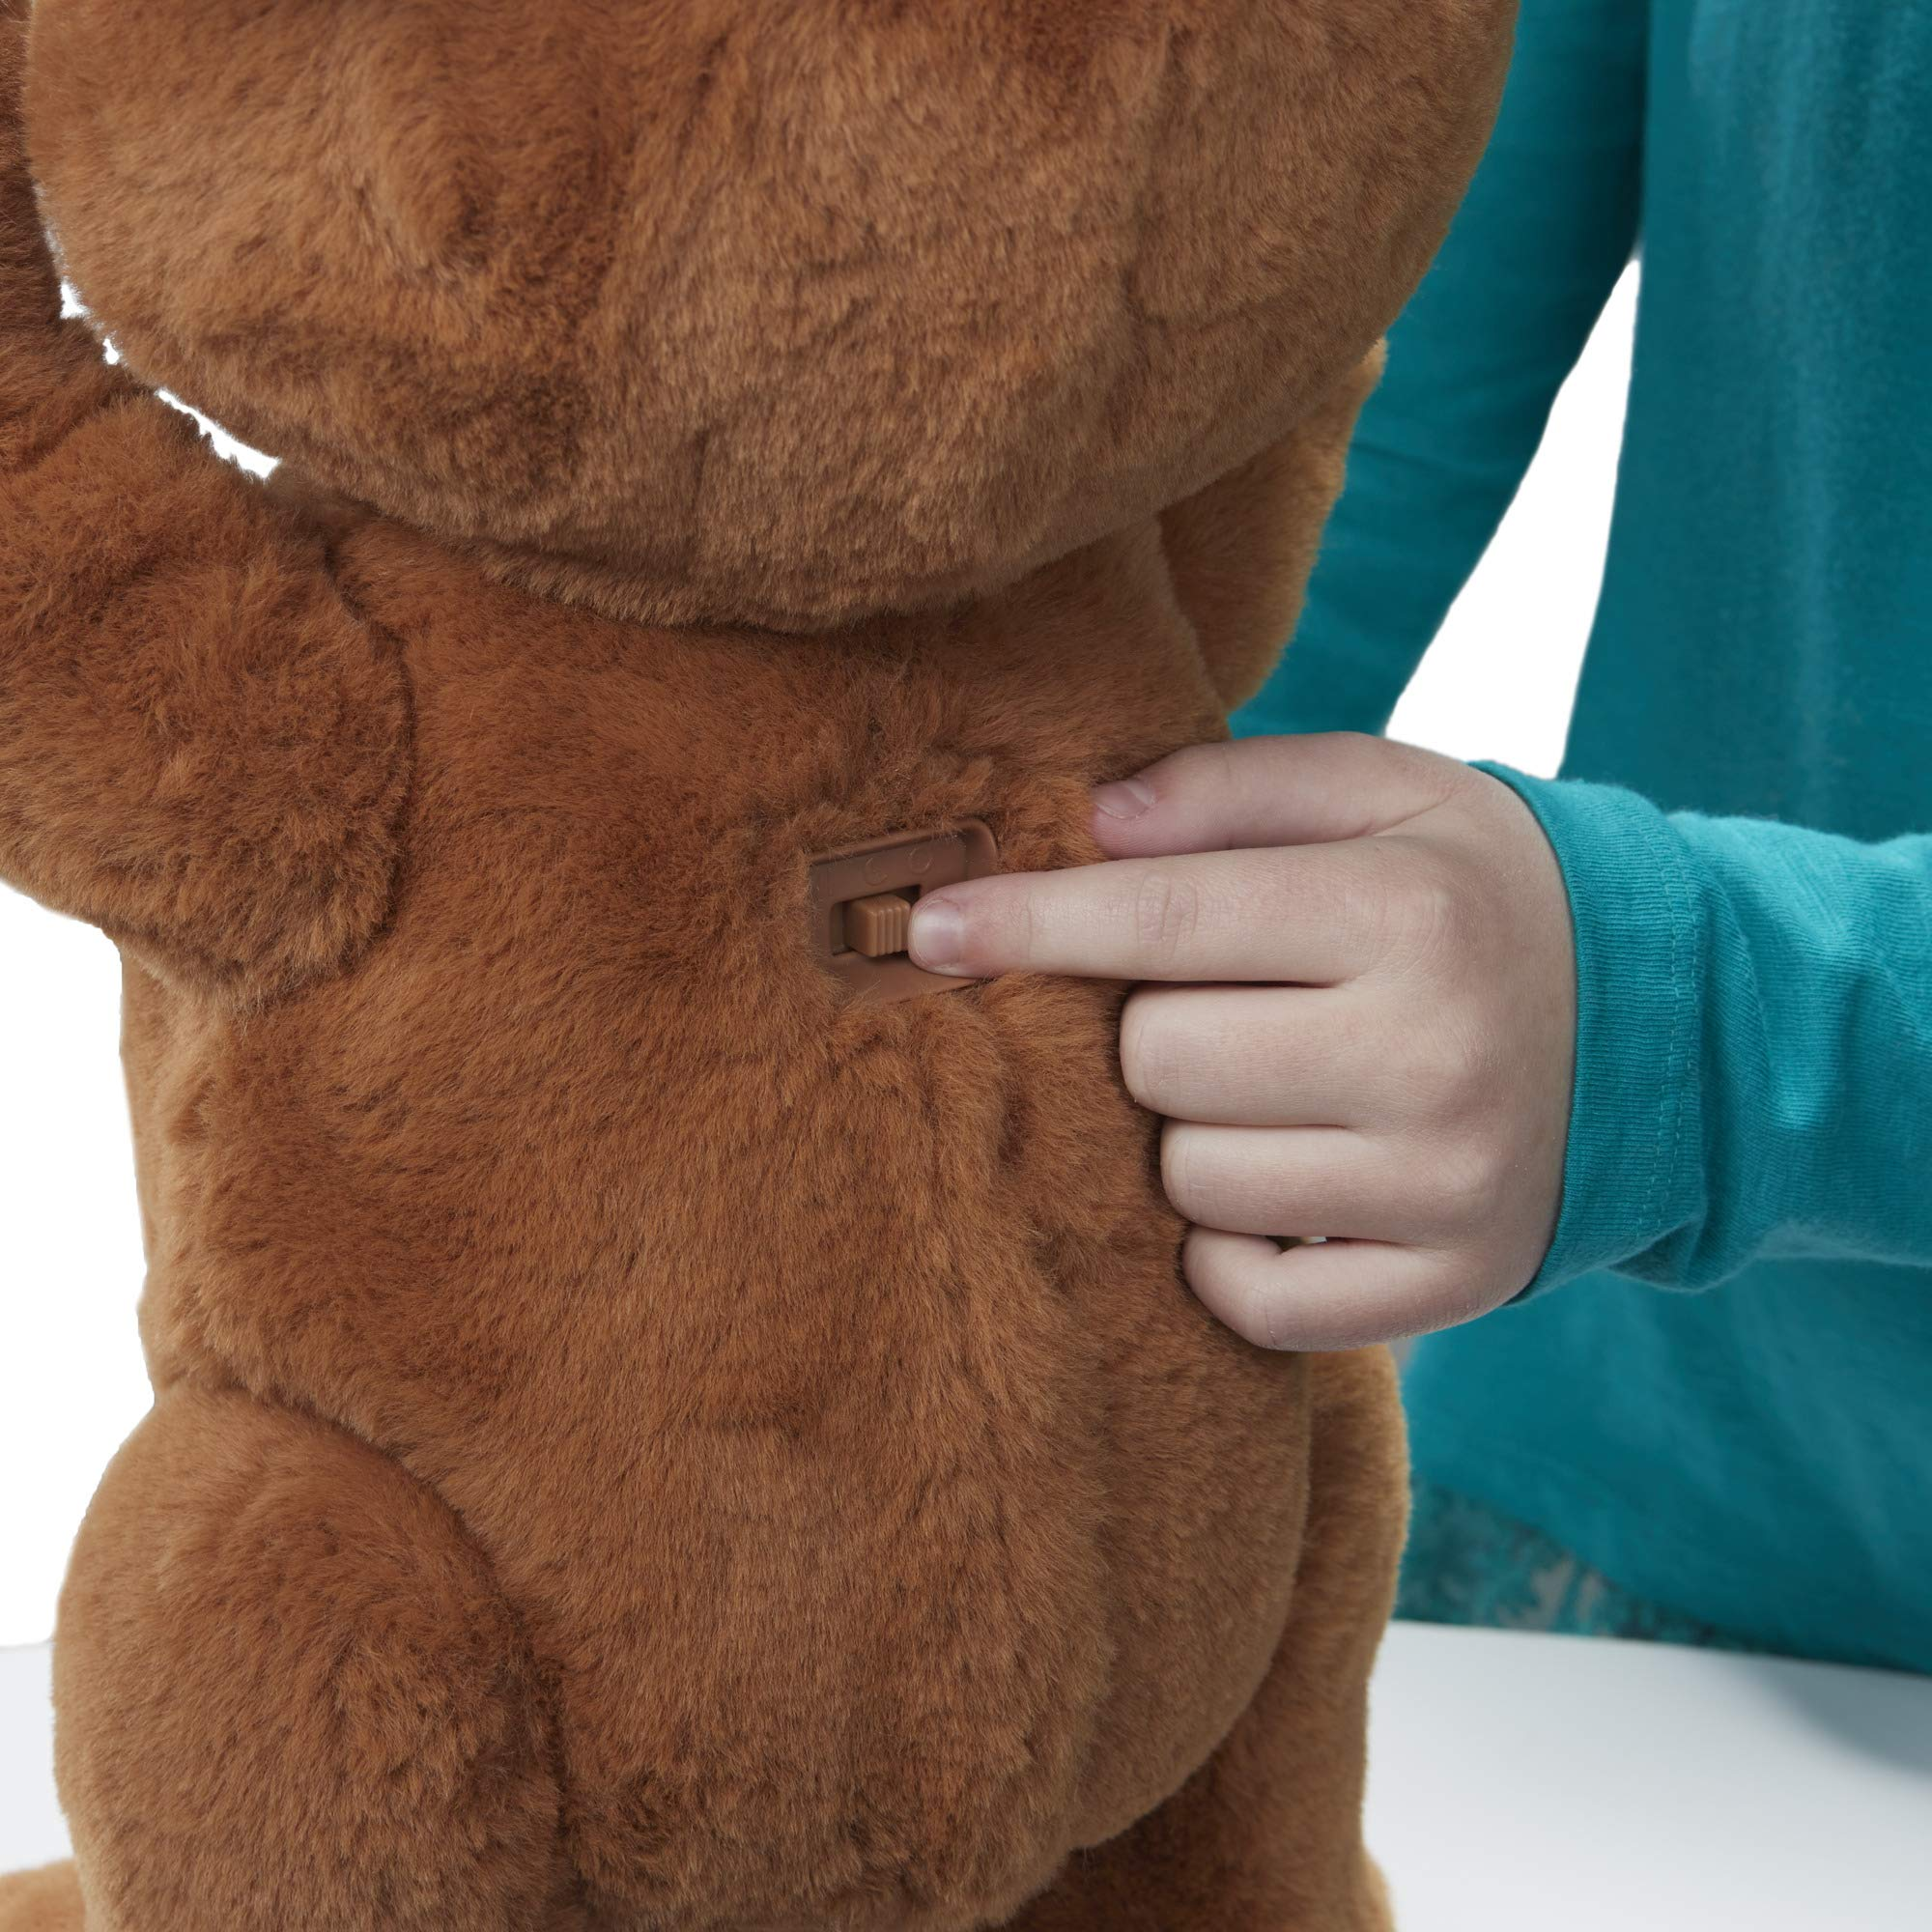 FurReal Cubby, The Curious Bear Interactive Plush Toy, Ages 4 and Up by FurReal (Image #6)